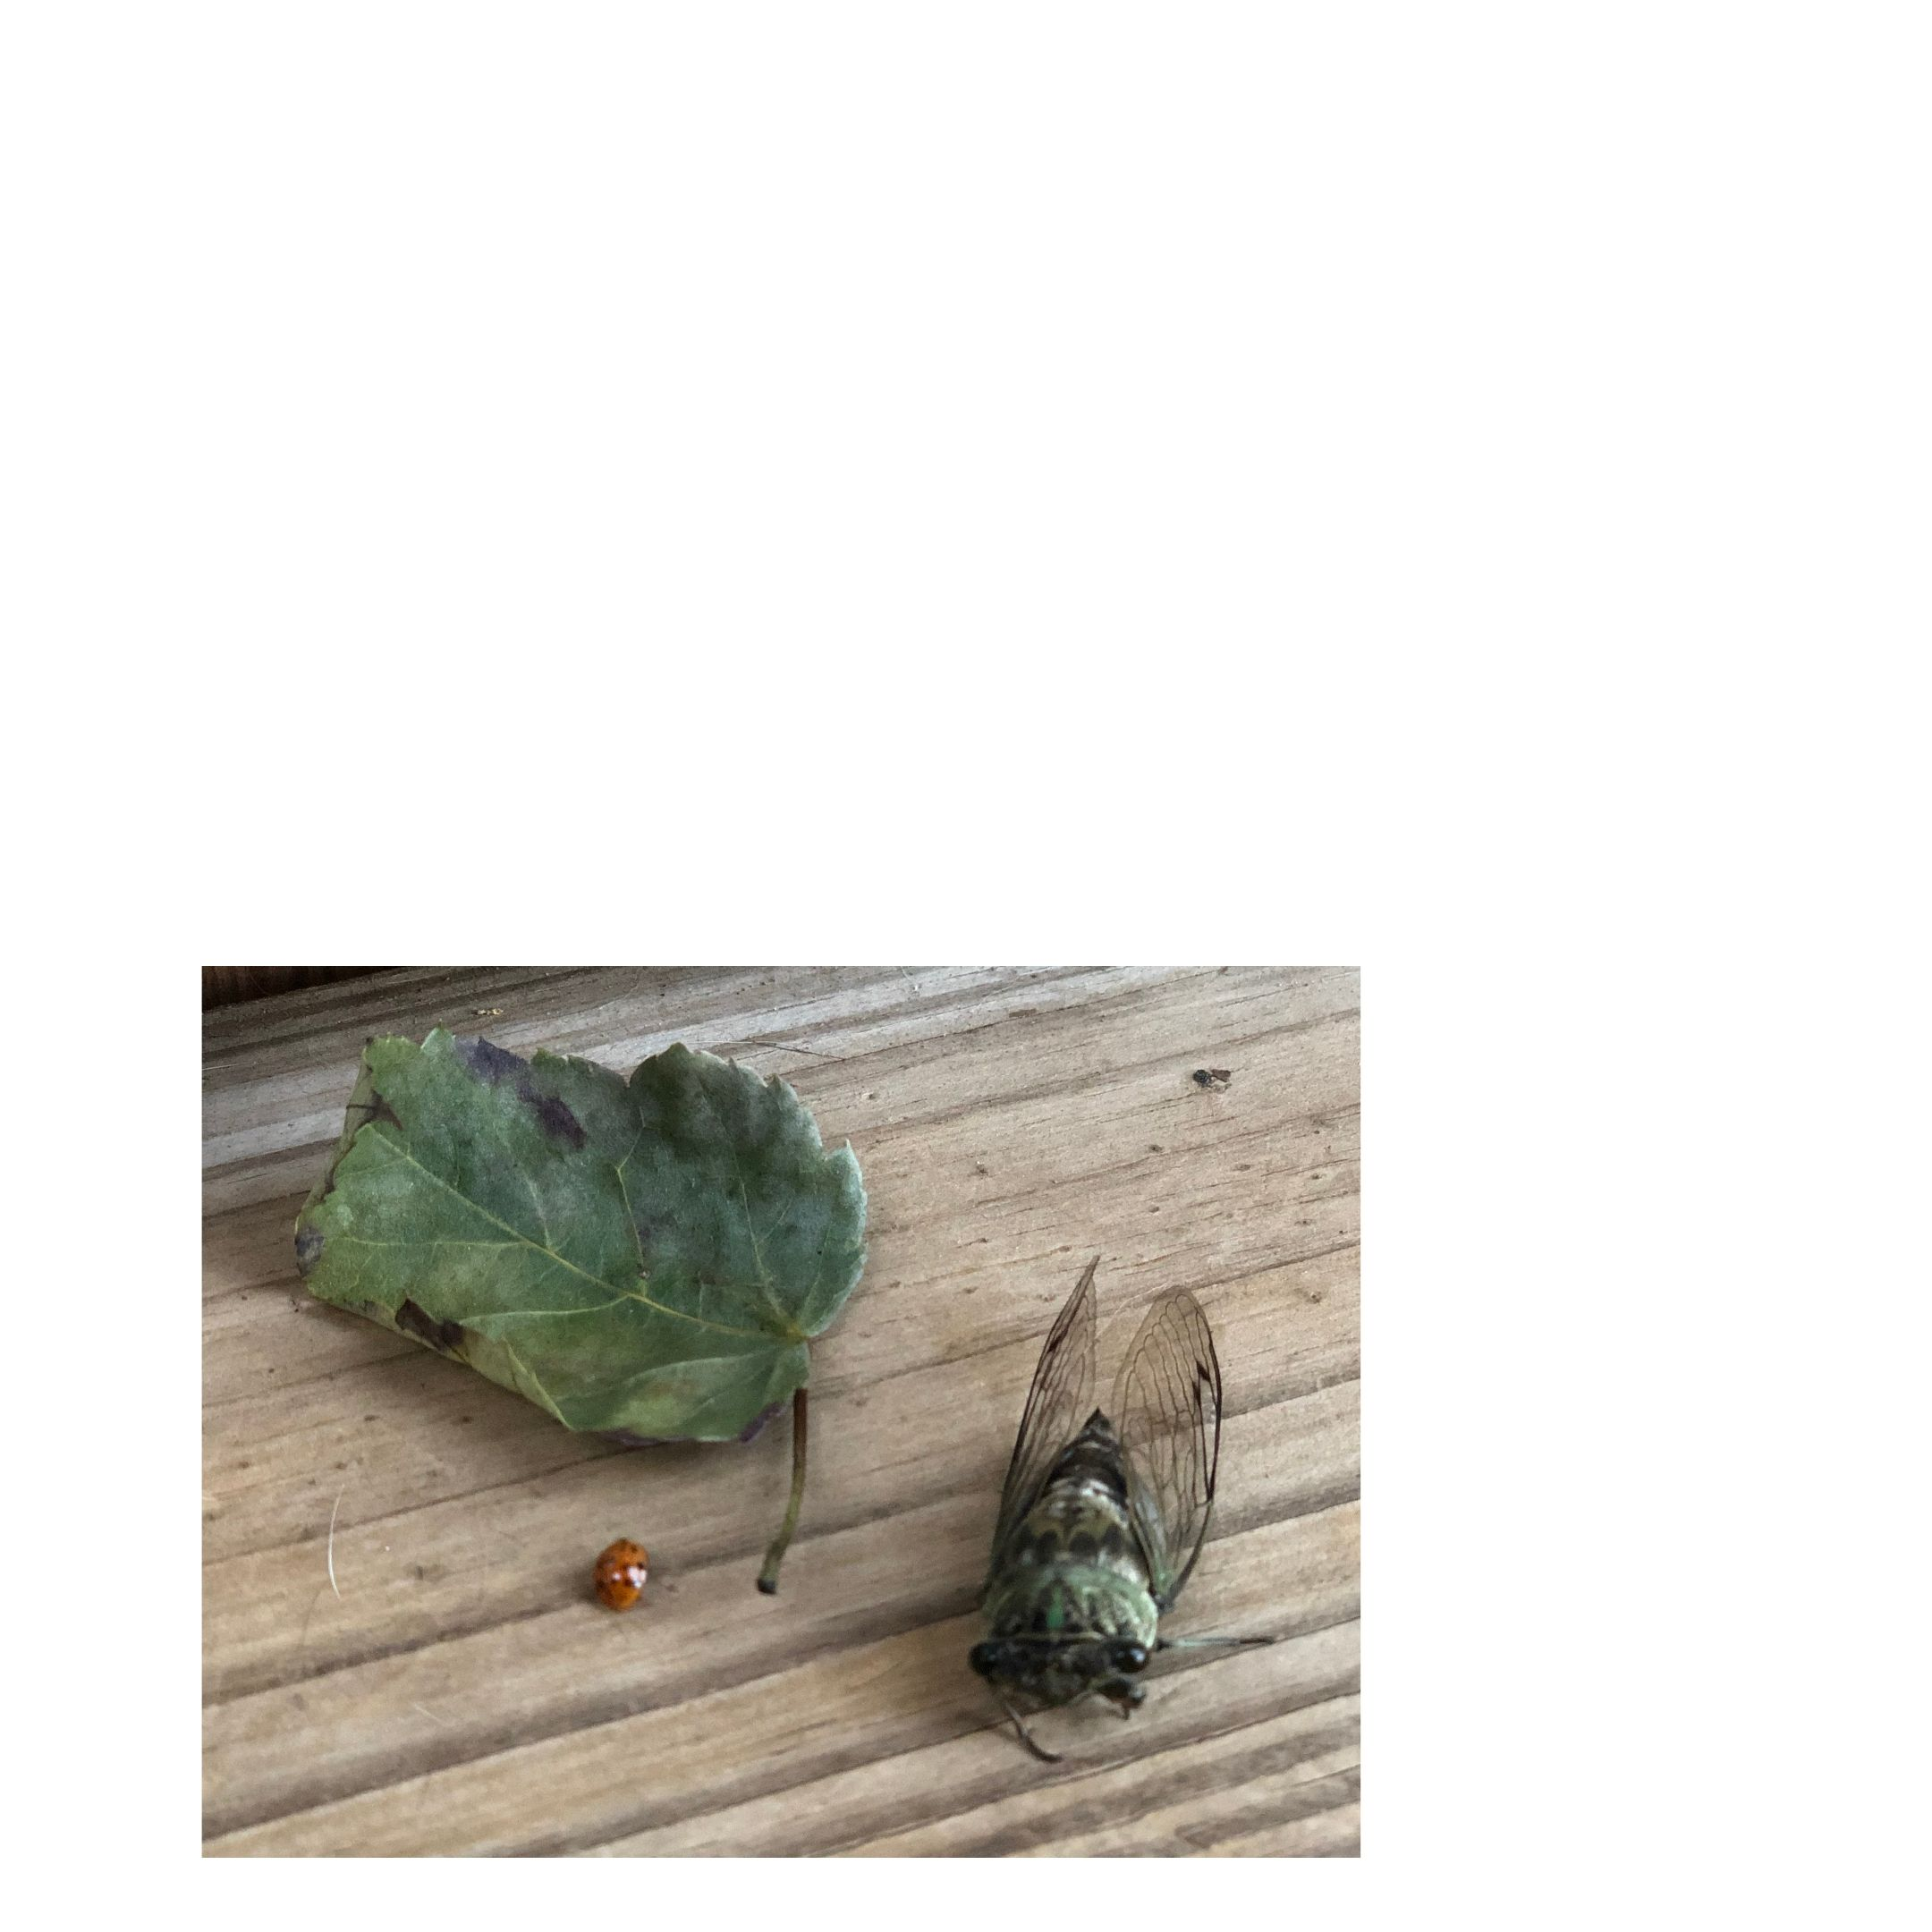 2 dead bugs and a leaf